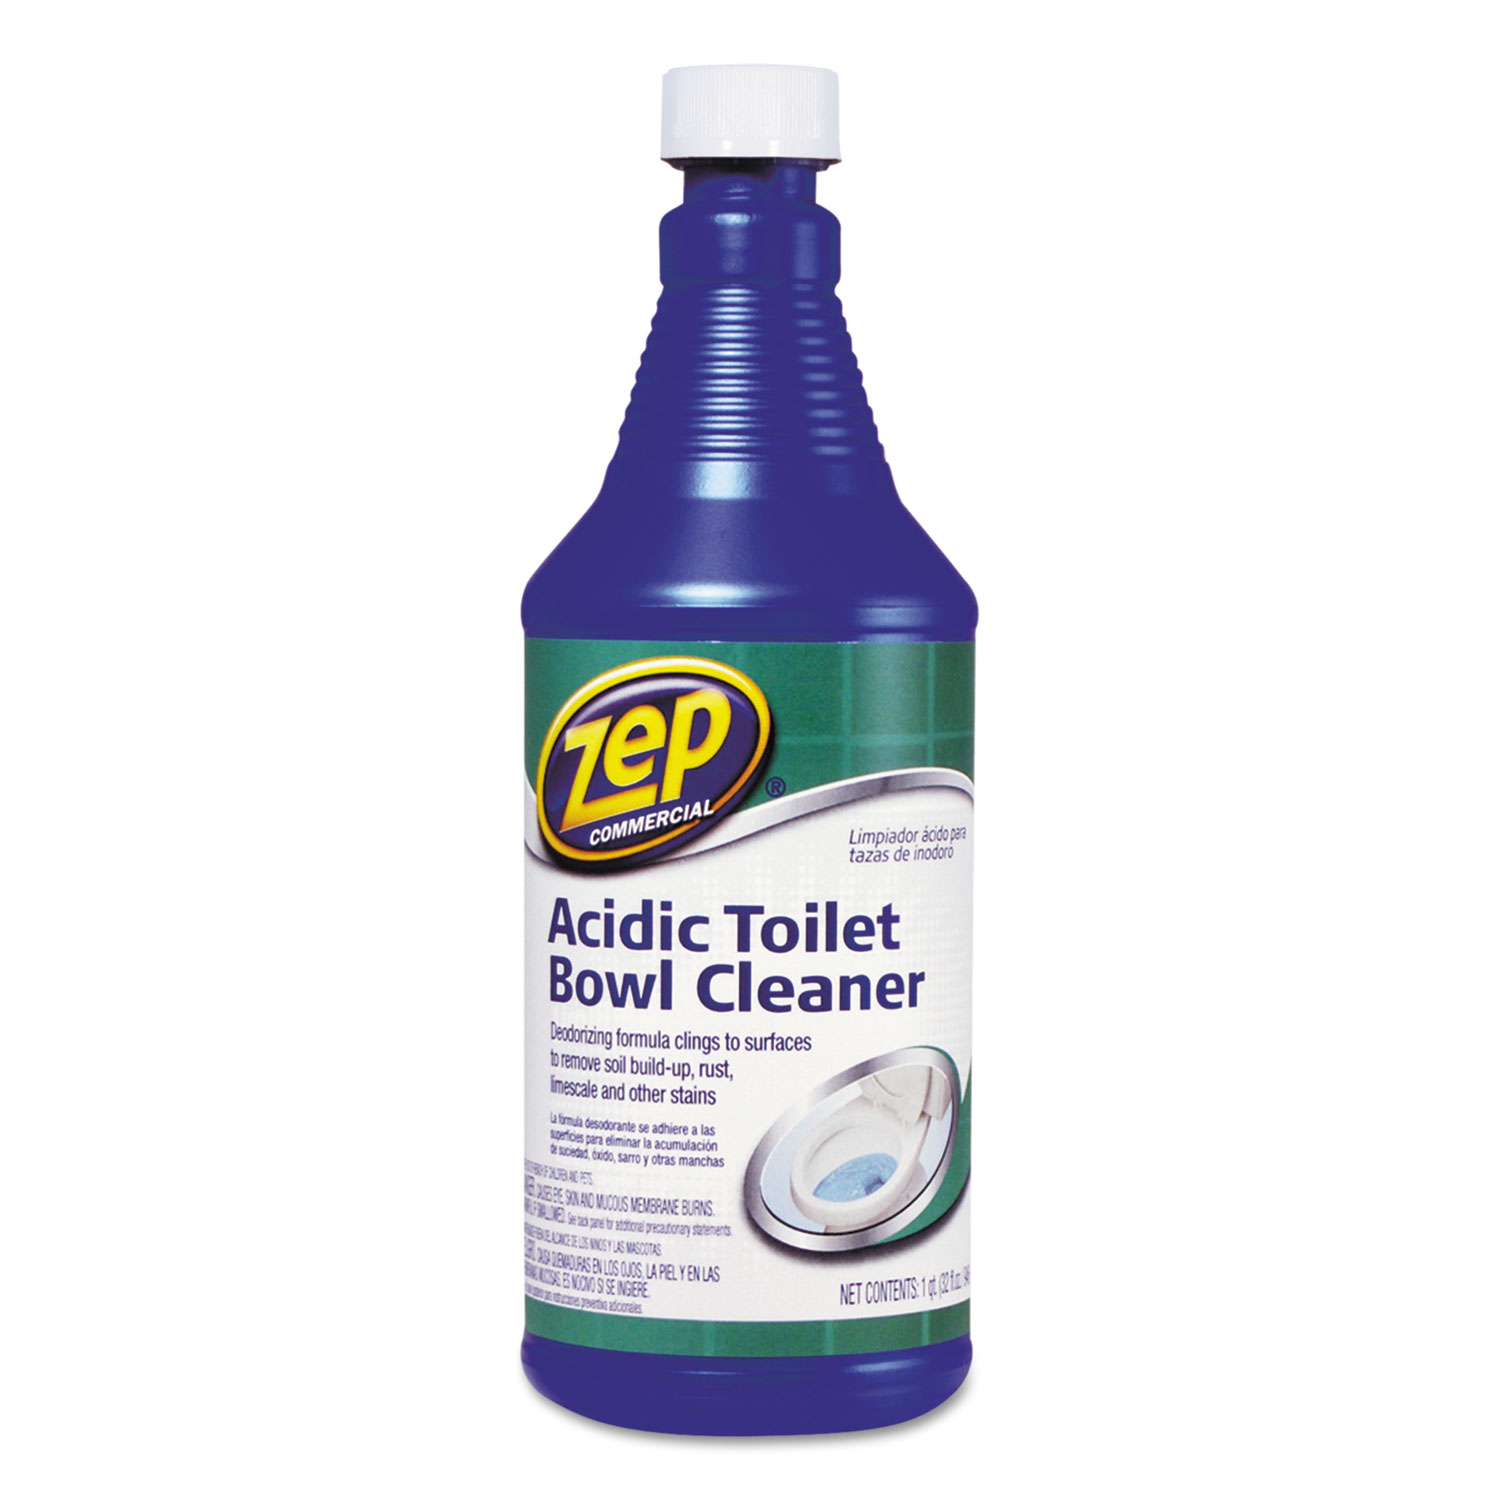 Acidic Toilet Bowl Cleaner By Zep Commercial 174 Zpe1046423